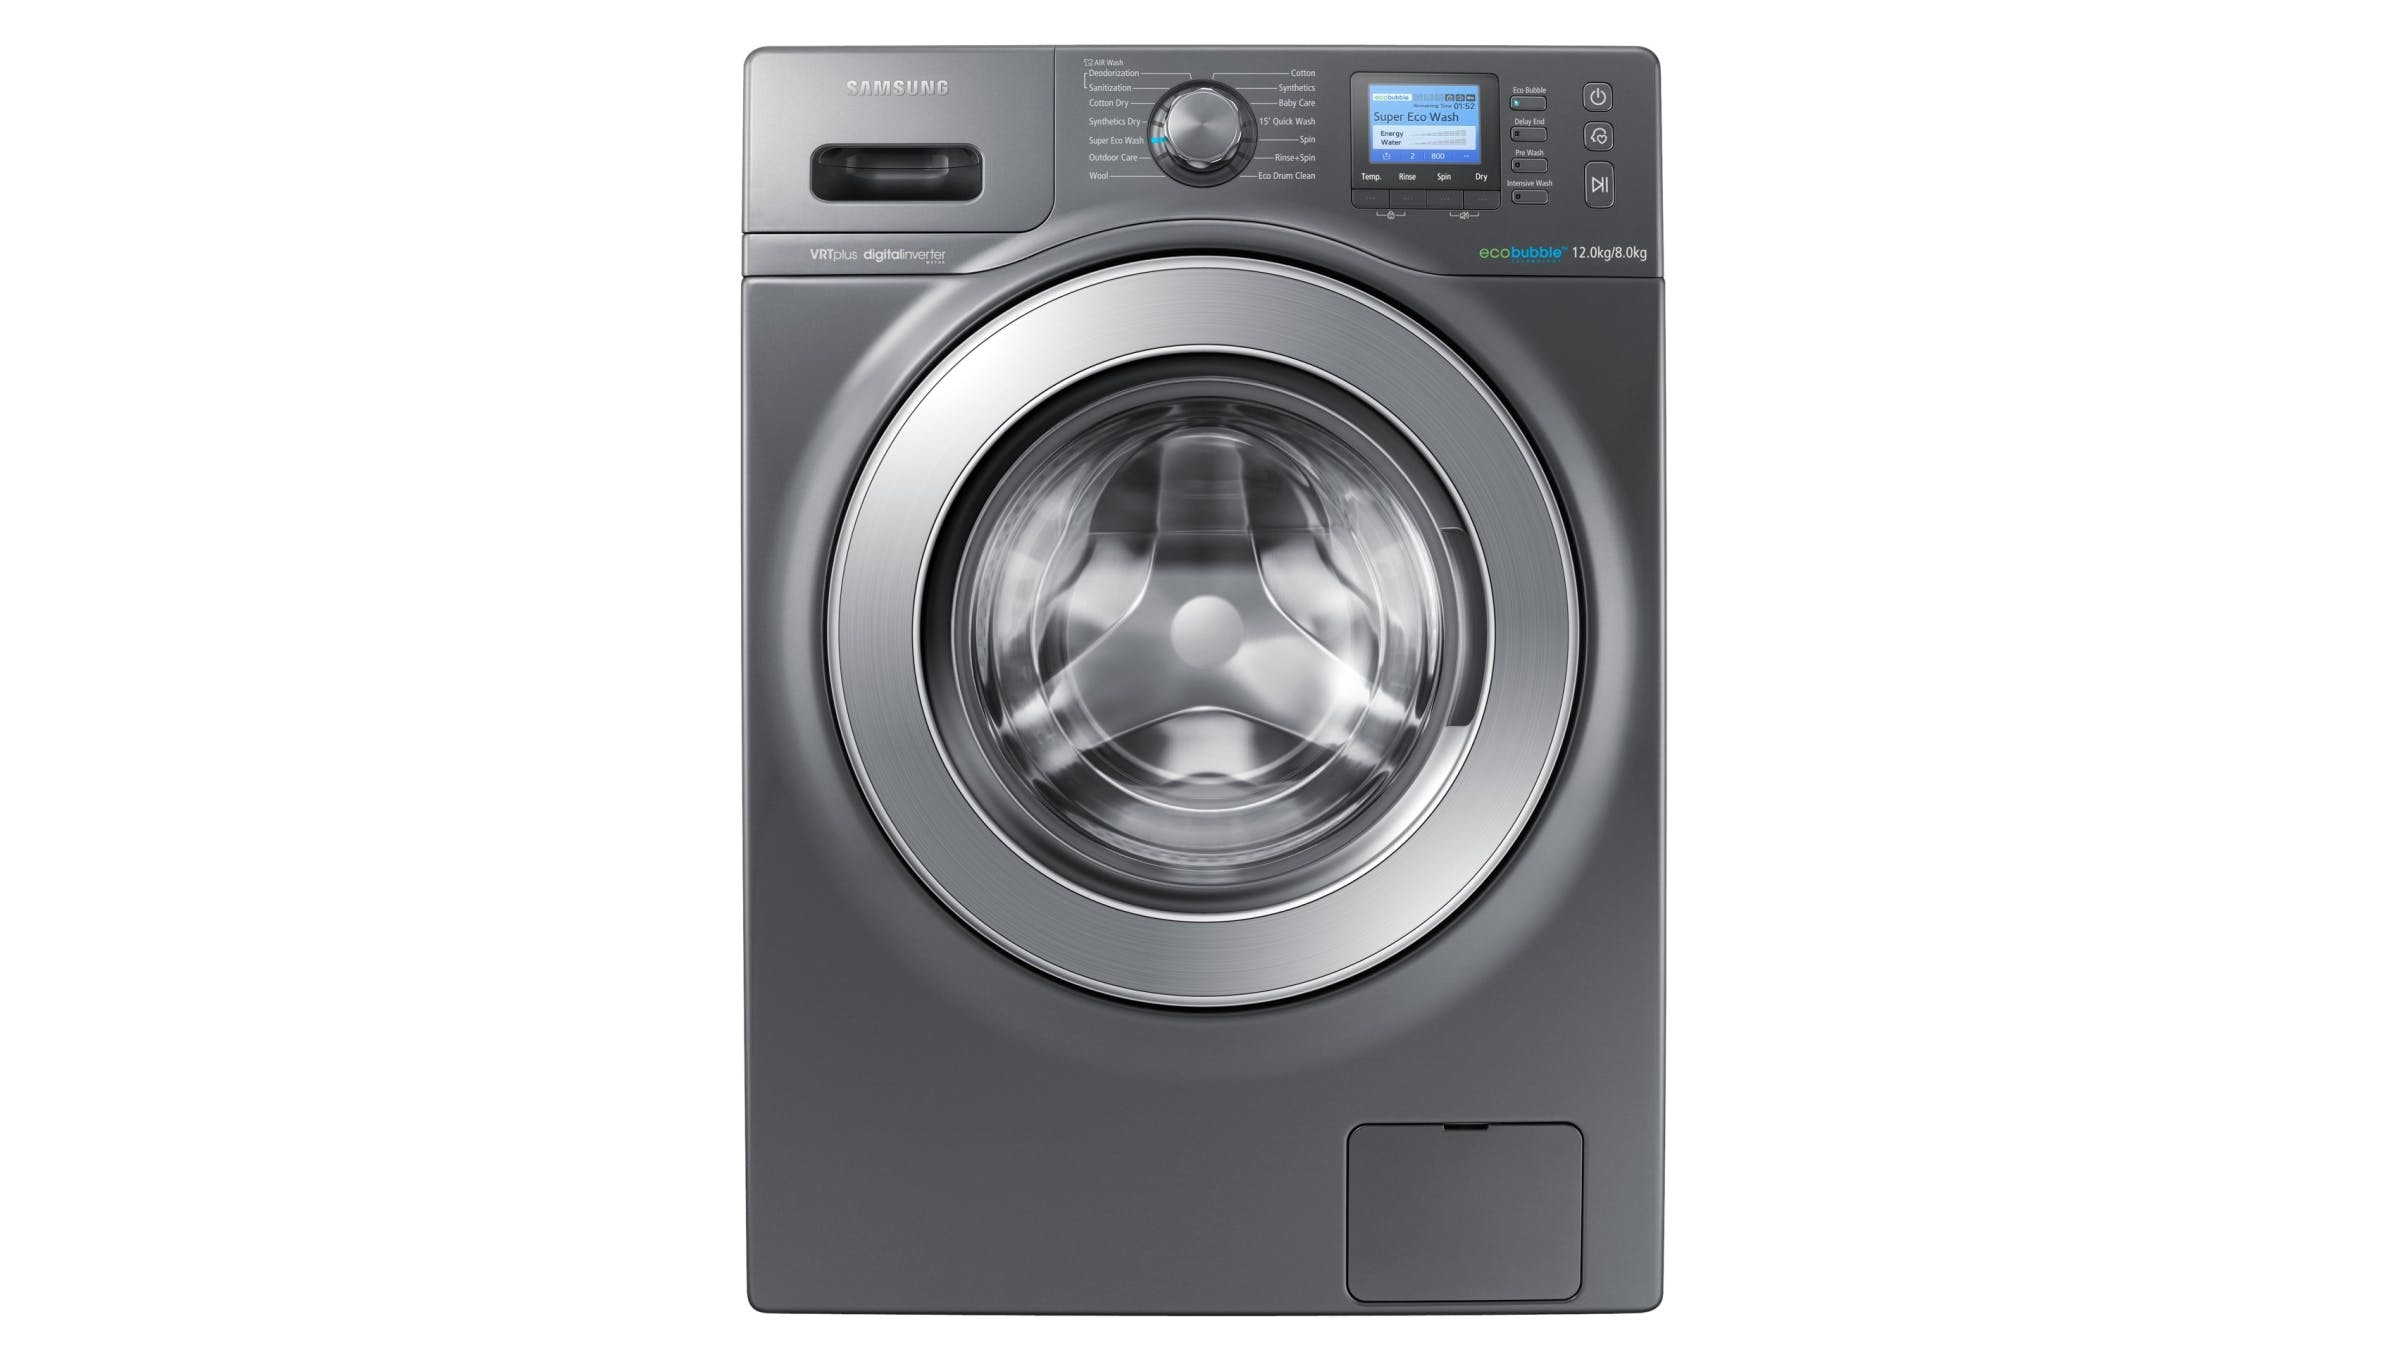 cu washer furniture ft load pedestals for samsung rated laundry front pedestal your dryer with idea dryers room best and